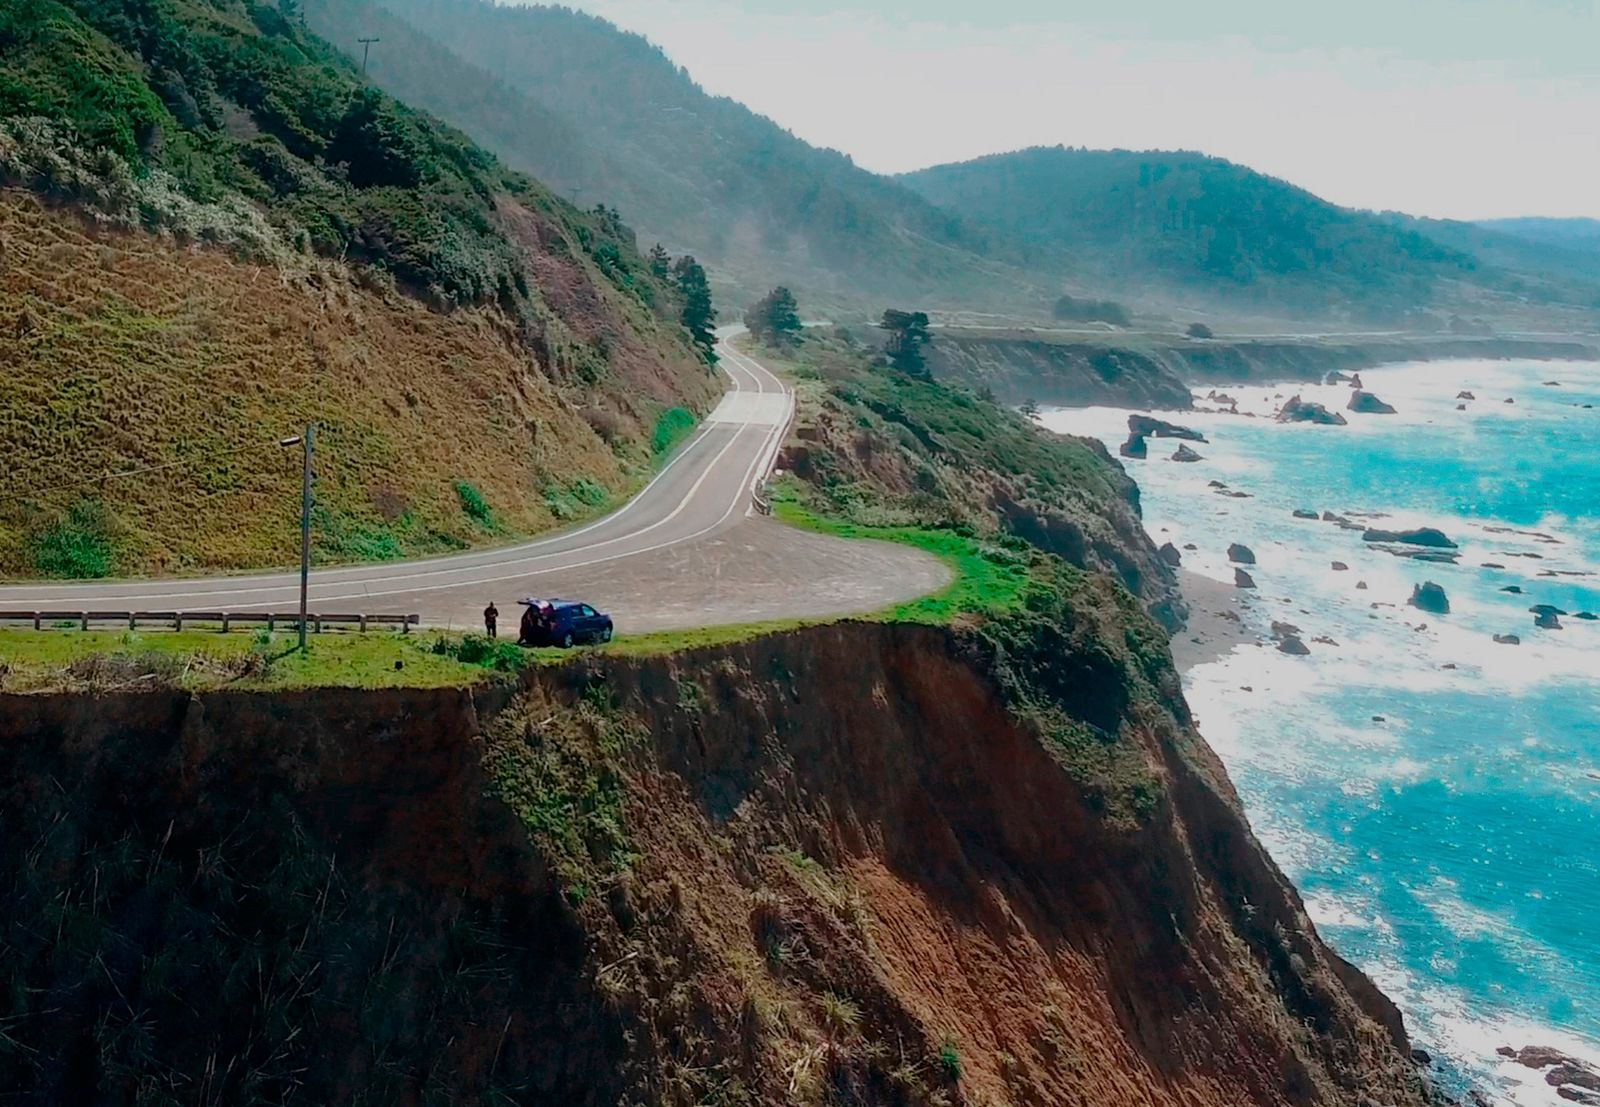 In this March 28, 2018 aerial file image from Alameda County Sheriff's Office drone video courtesy of Mendocino County shows the pullout where the SUV of Jennifer and Sarah Hart was recovered off the off Pacific Coast Highway 1, near Westport, Calif. The SUV carrying the large, free-spirited family from Washington state accelerated straight off the scenic California cliff and the deadly wreck may have been intentional, authorities said Sunday, April 1, 2018. (Alameda County Sheriff's Office via AP, File)